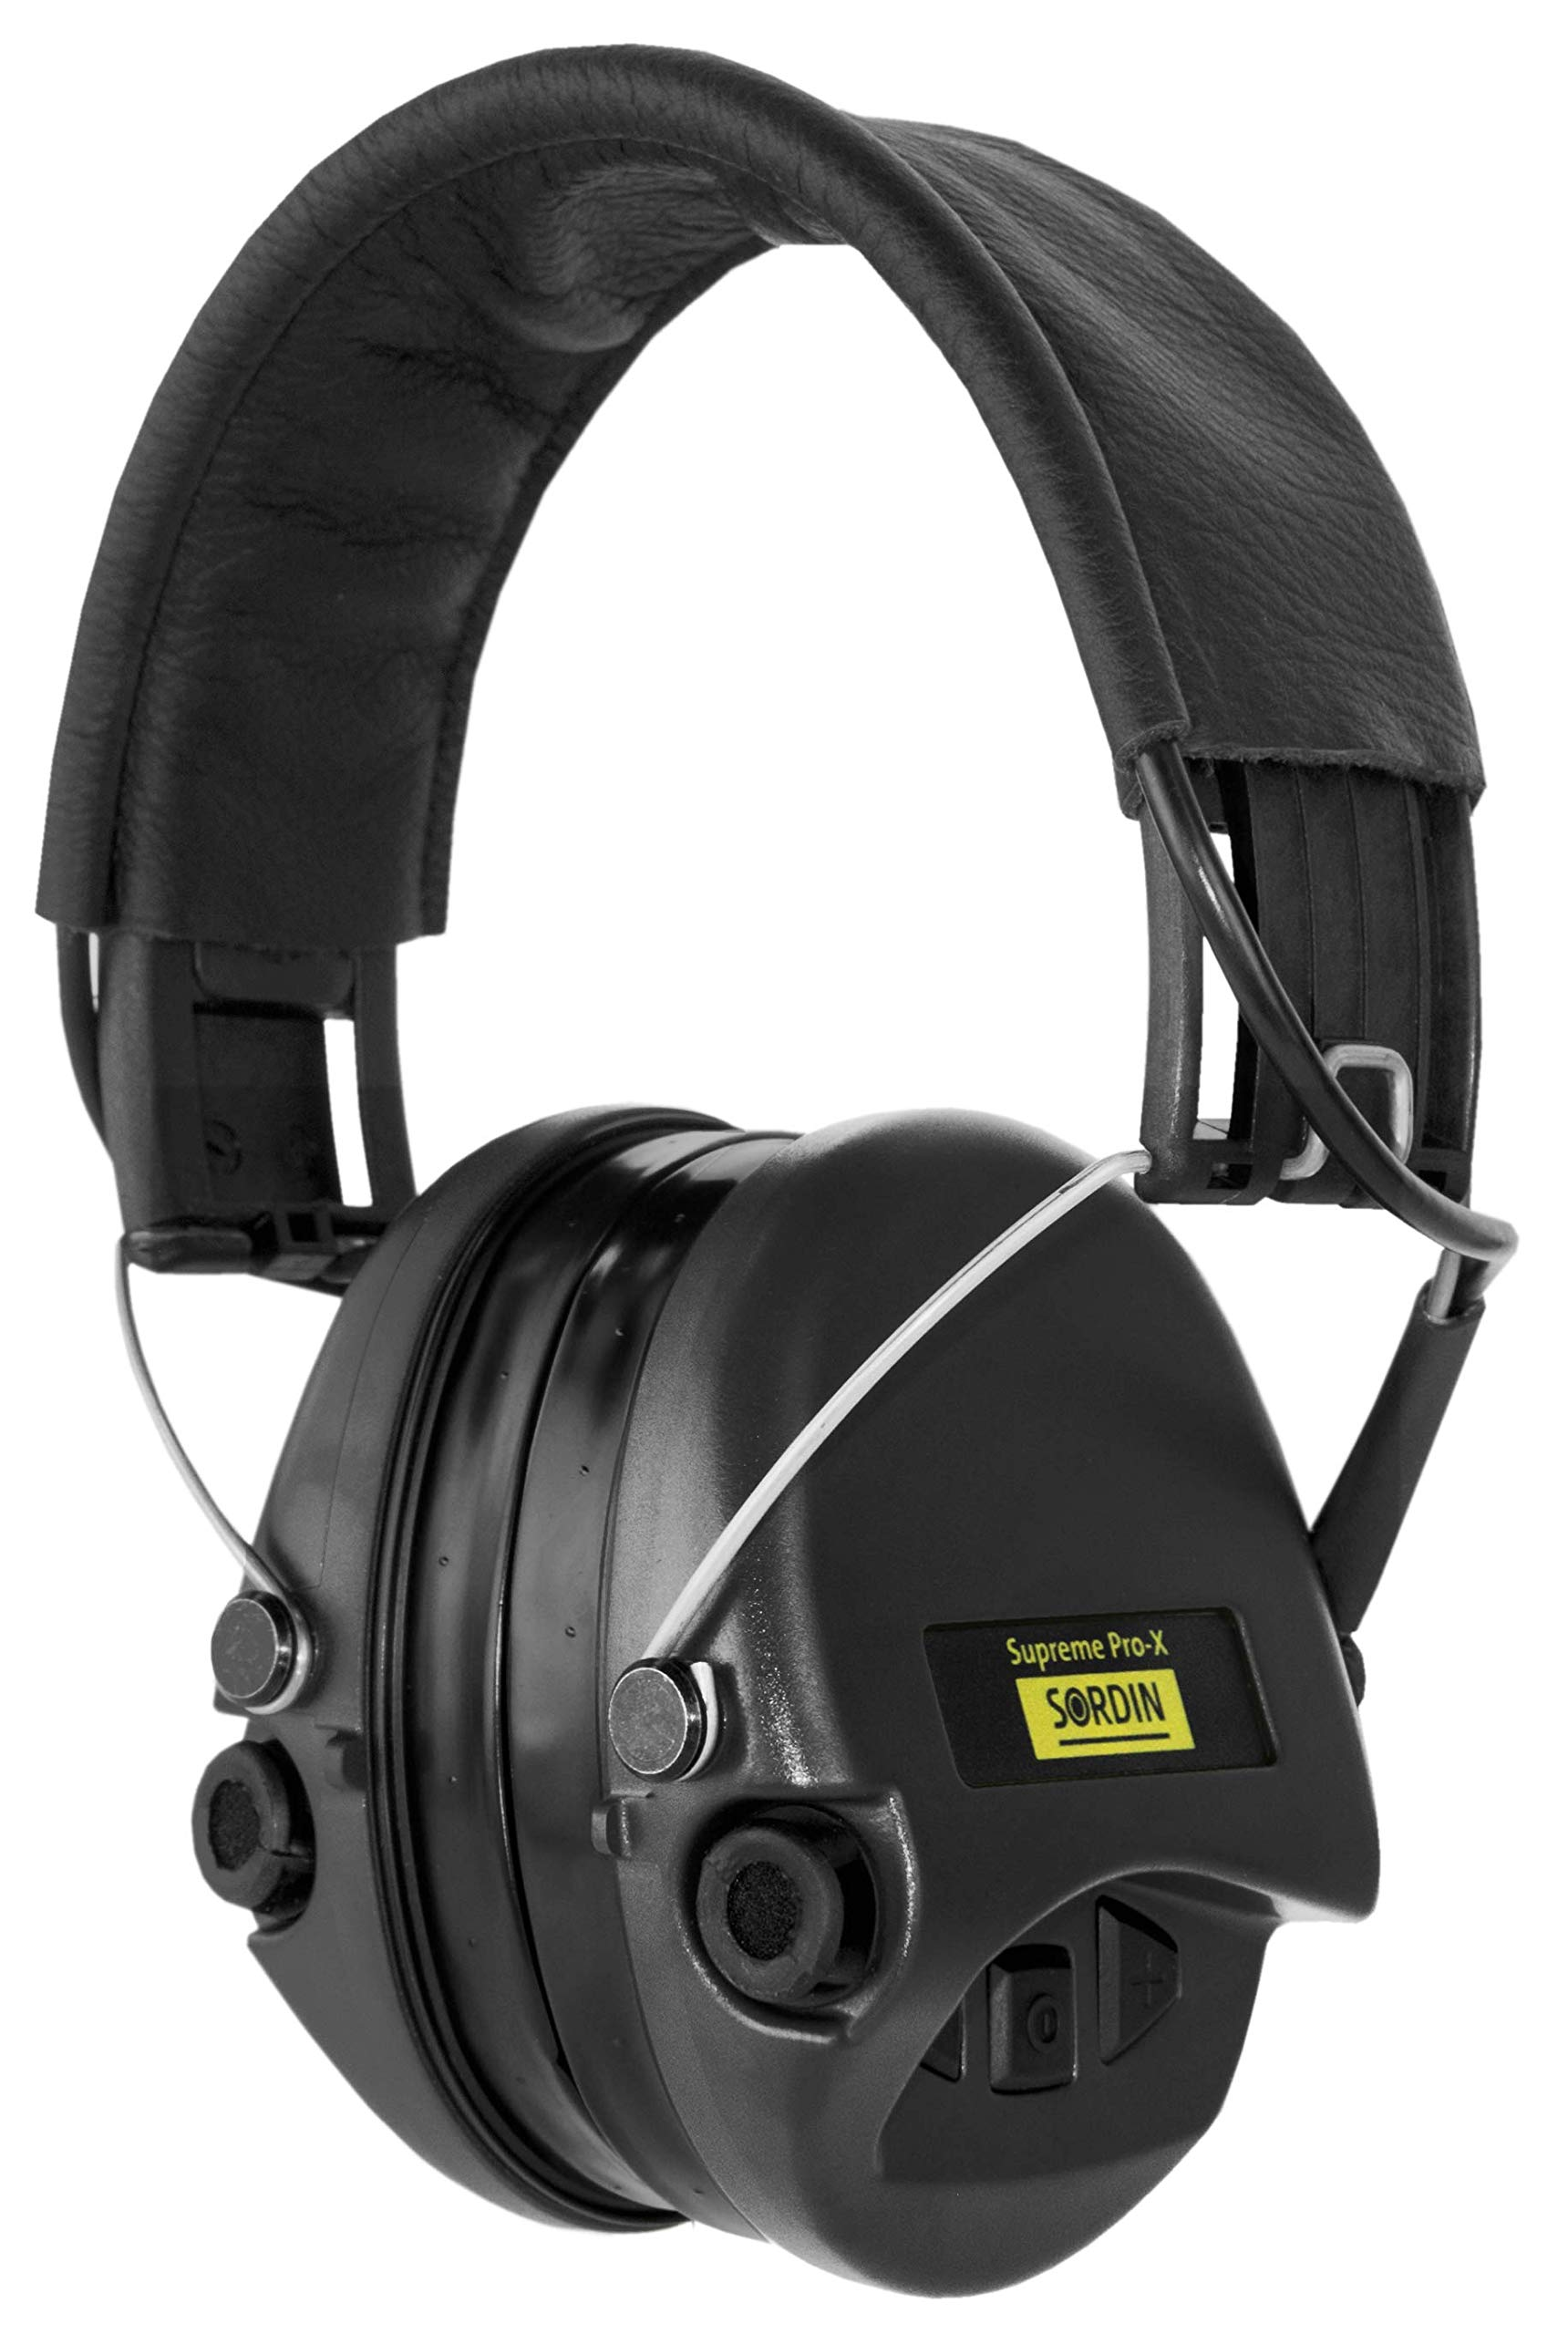 Sordin Supreme PRO X, Active Hearing Protection, Noise Reduction Safety Ear Muffs, for Shooting, Hunting, Work, with Gel Seals, Black Leather Headband and Cups